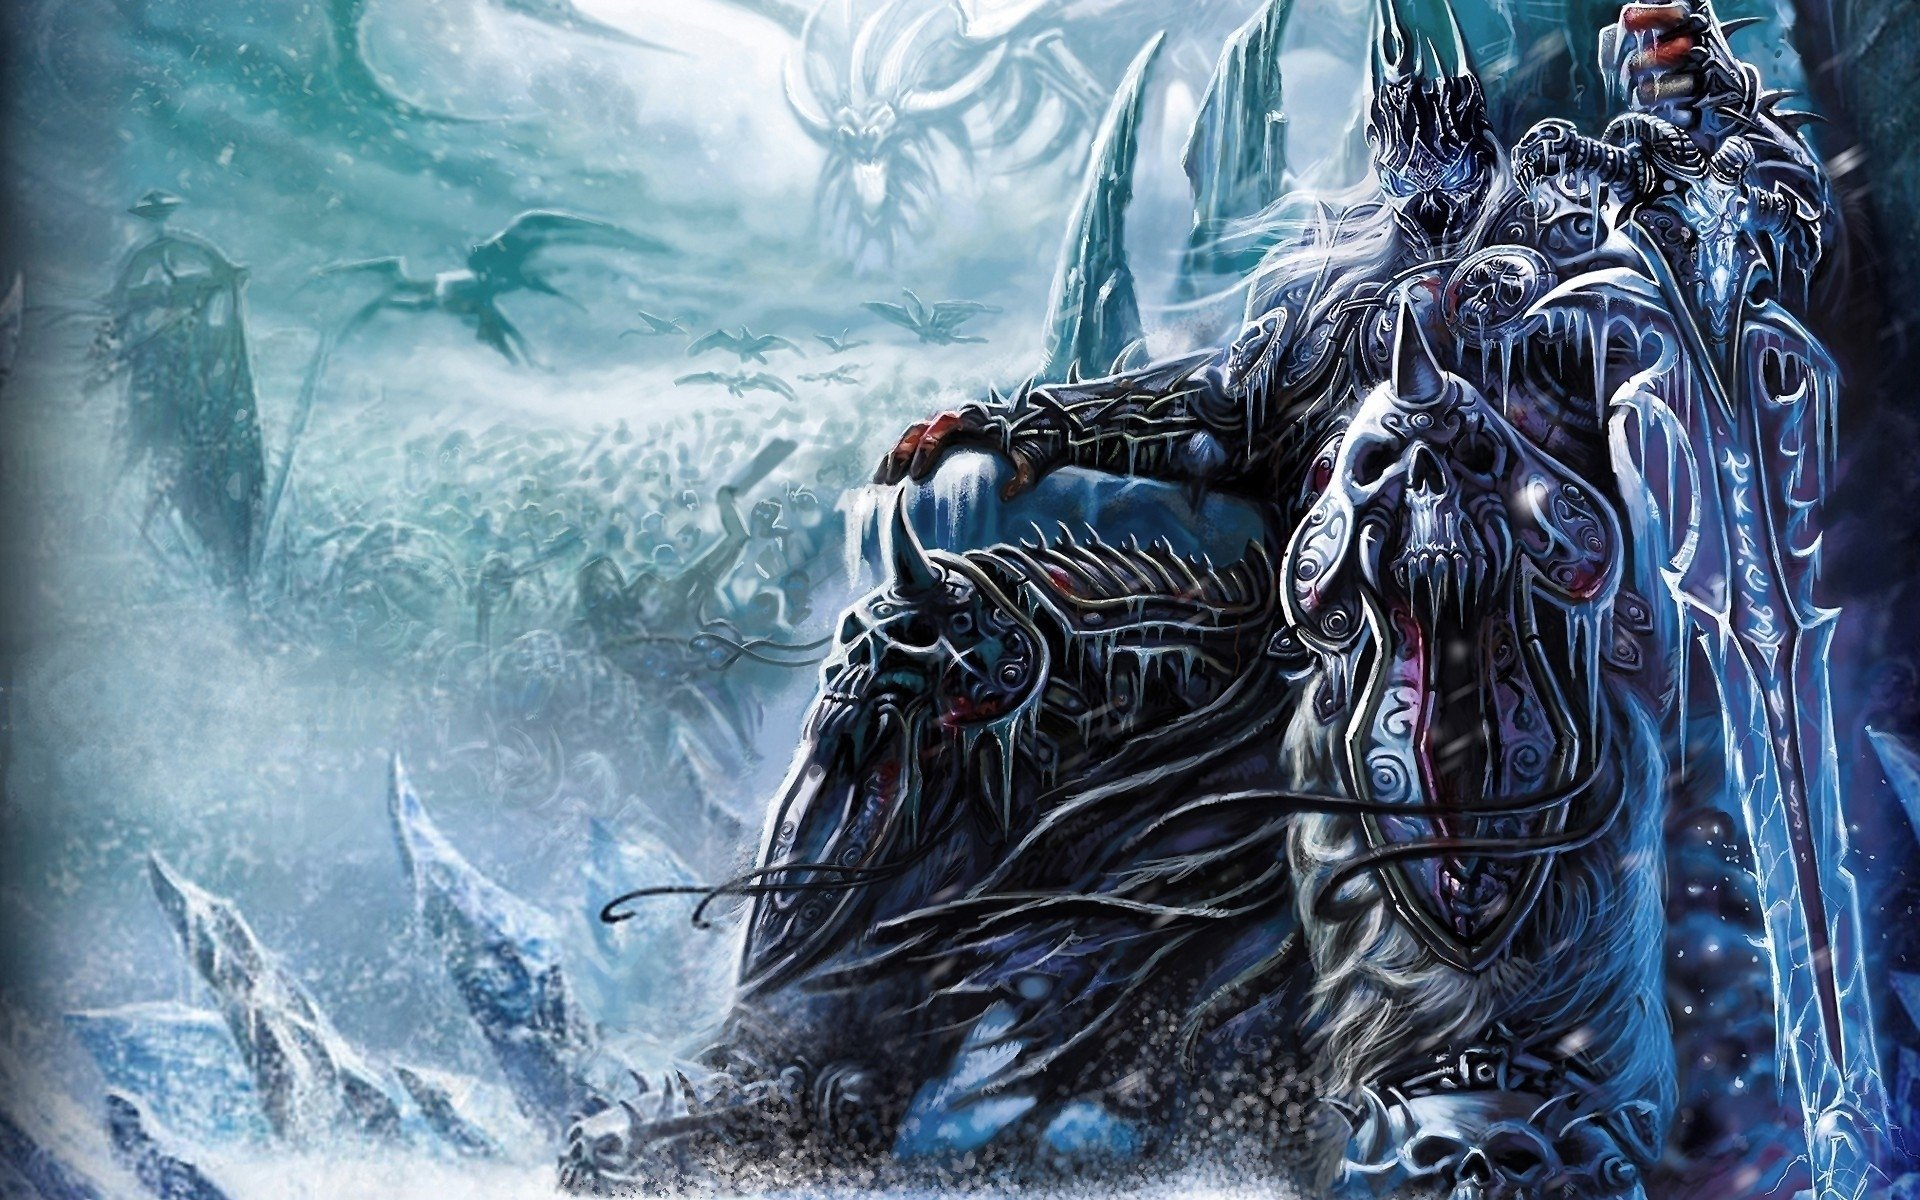 896 World Of Warcraft HD Wallpapers   Backgrounds - Wallpaper Abyss